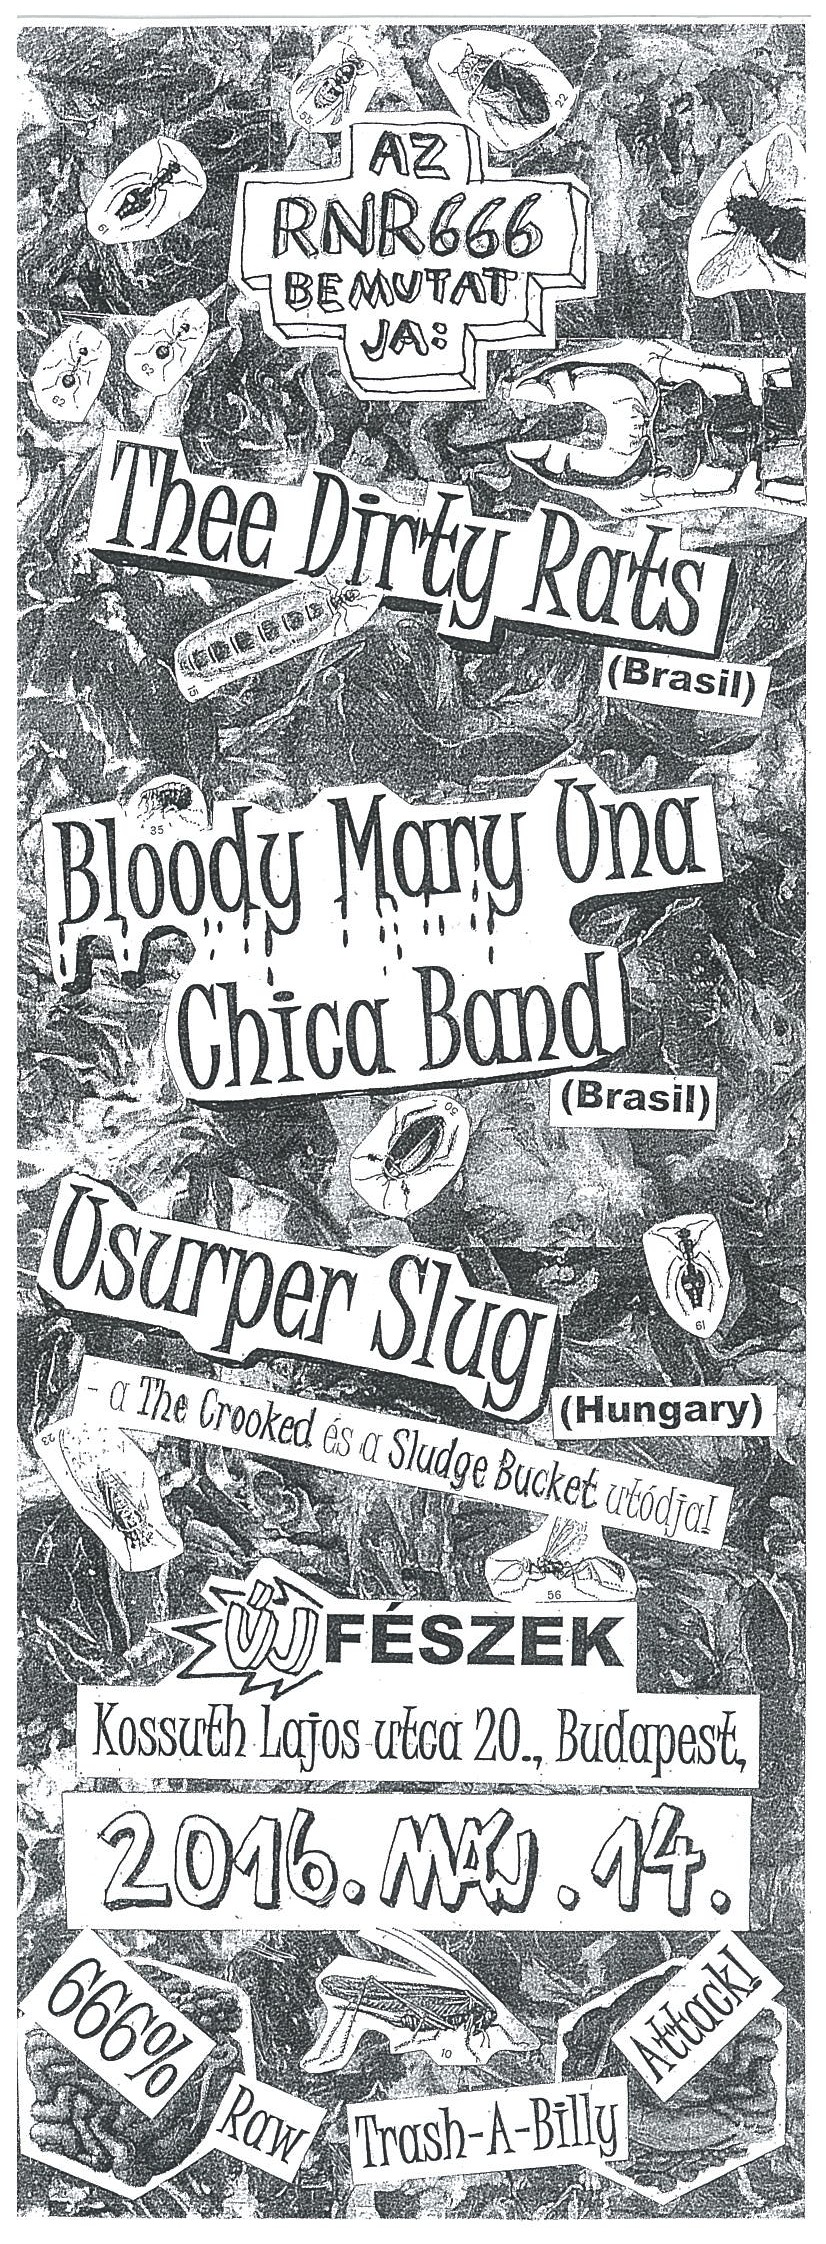 Thee Dirty Rats (Brasil)+Bloody Mary Una Chica Band (Brasil)+Usurper Slug (HU)